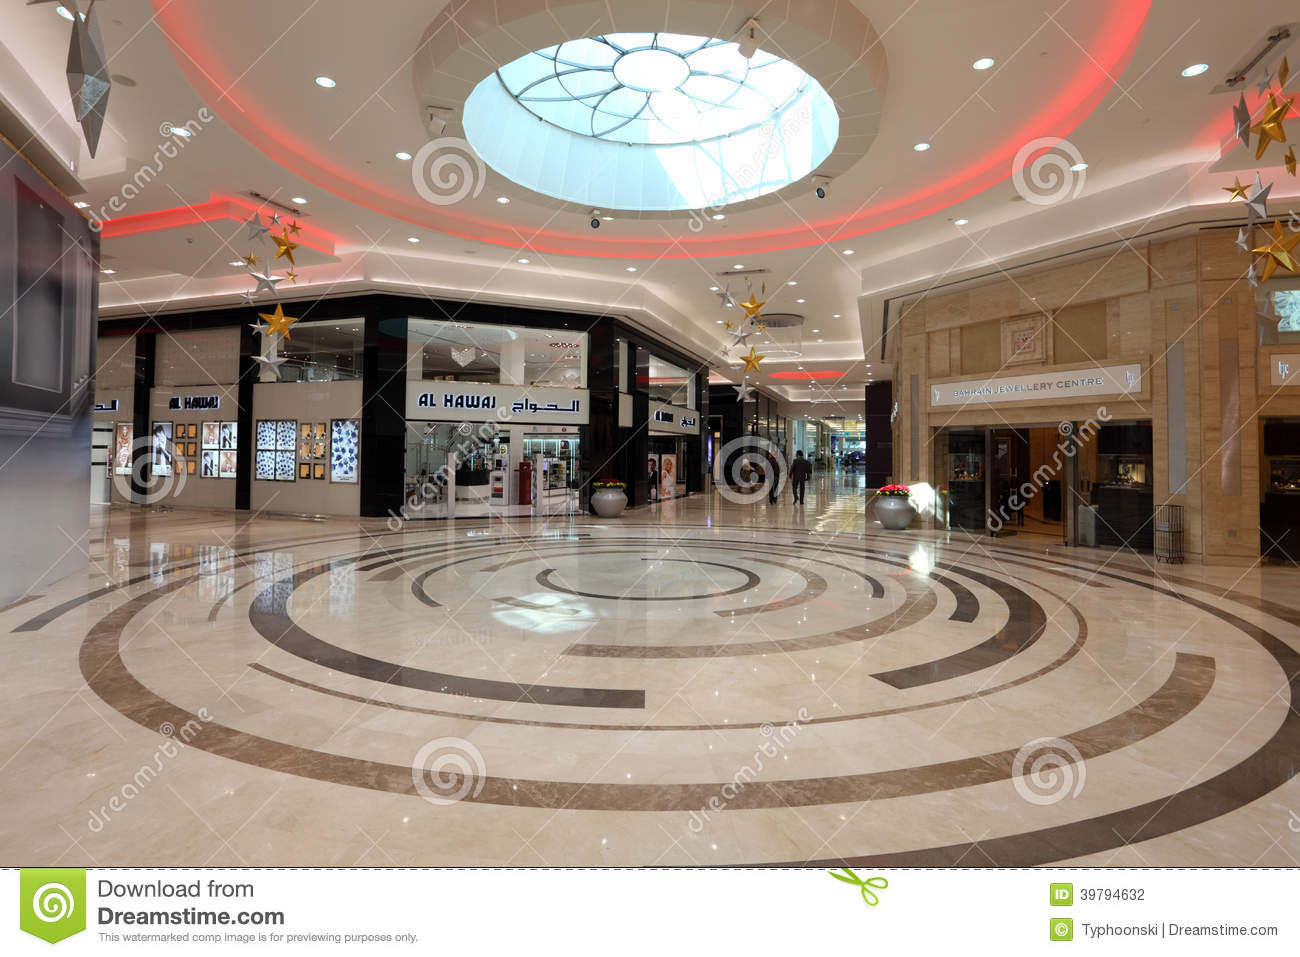 Moda mall in bahrain world trade center editorial for United international decor bahrain